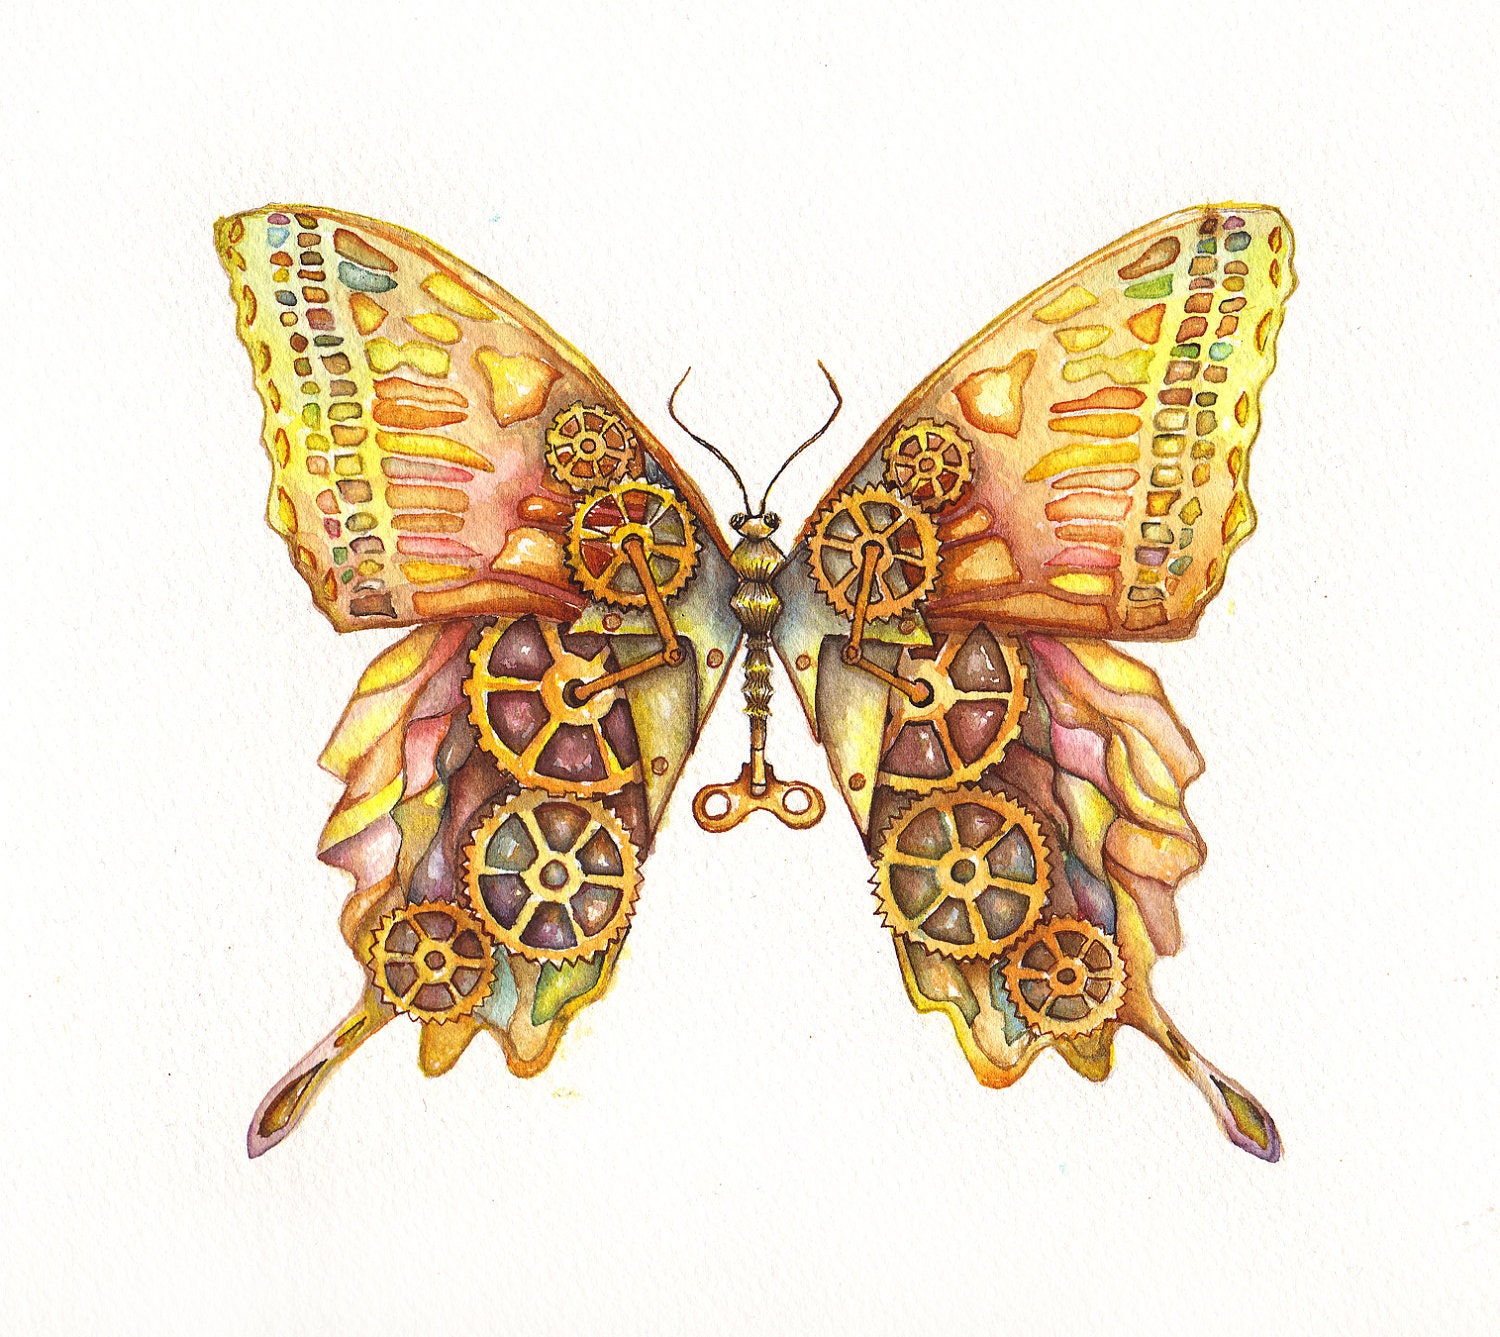 Steampunk Butterfly Original Painting 12x9 - photo#19